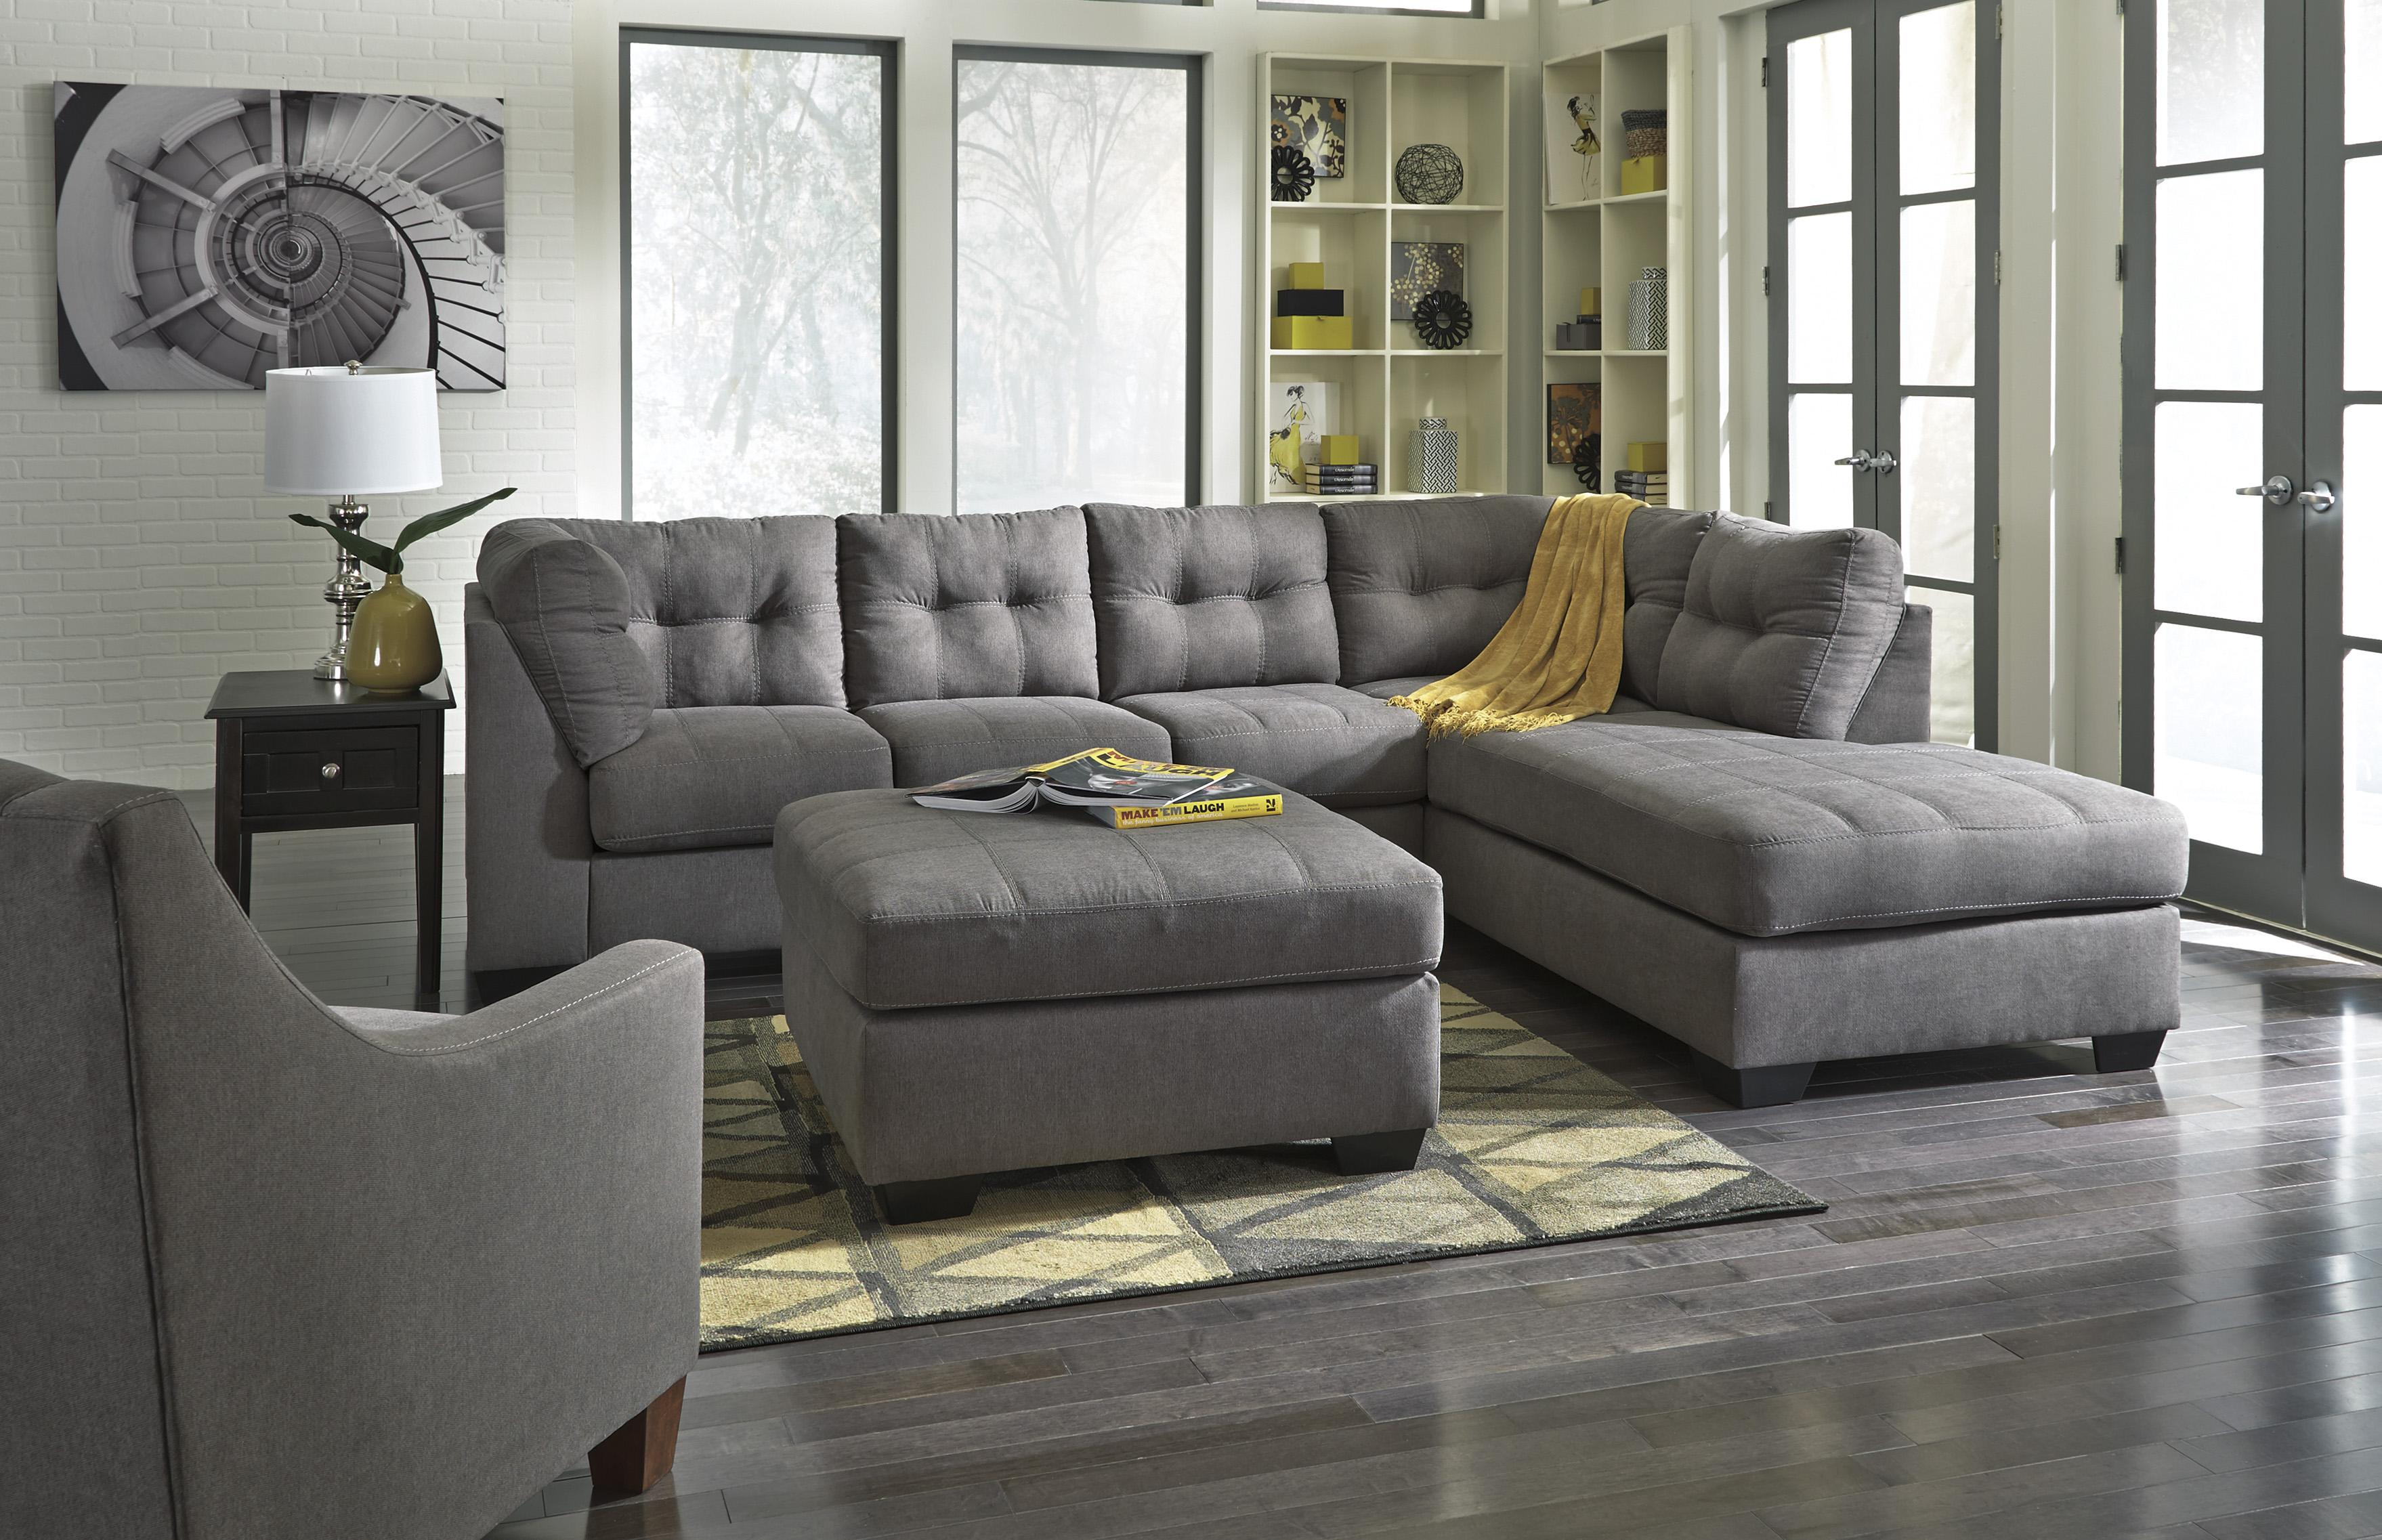 furniture sale images cheap blue exclusivos gray for sectional of grey modernas grayufted broyhill microfiber sensational full best with tufted sofa concept size alfombras sectionals couch